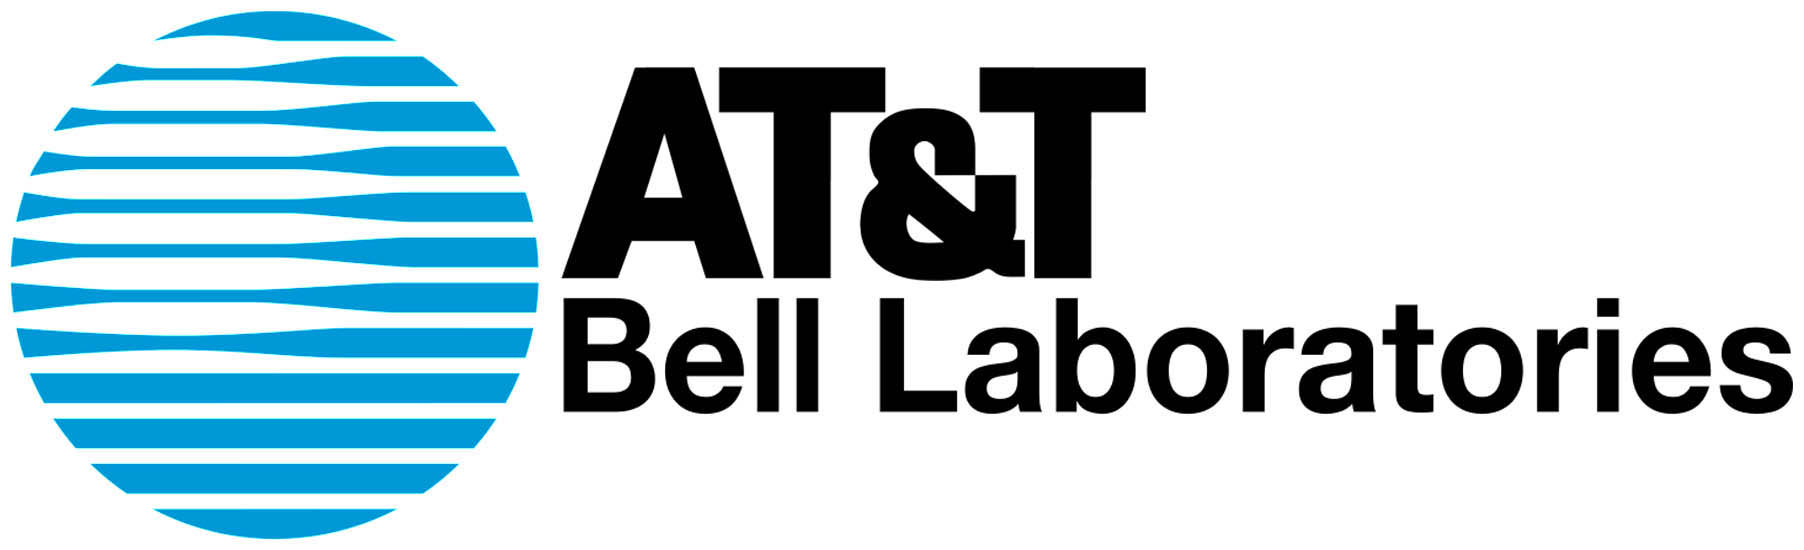 My name is Ken Meyering. I made this COUNTERFEIT AT&T Bell Laboratories logo. This is COMPUTATIONAL DERIVATIVE ART. This LOGO is a combination of a real AT&T Logo and the Bell Laboratories Logo. https://s3.amazonaws.com/media.define.com/COUNTERFEIT_Bell_Labs_logo_1984-1995.jpg